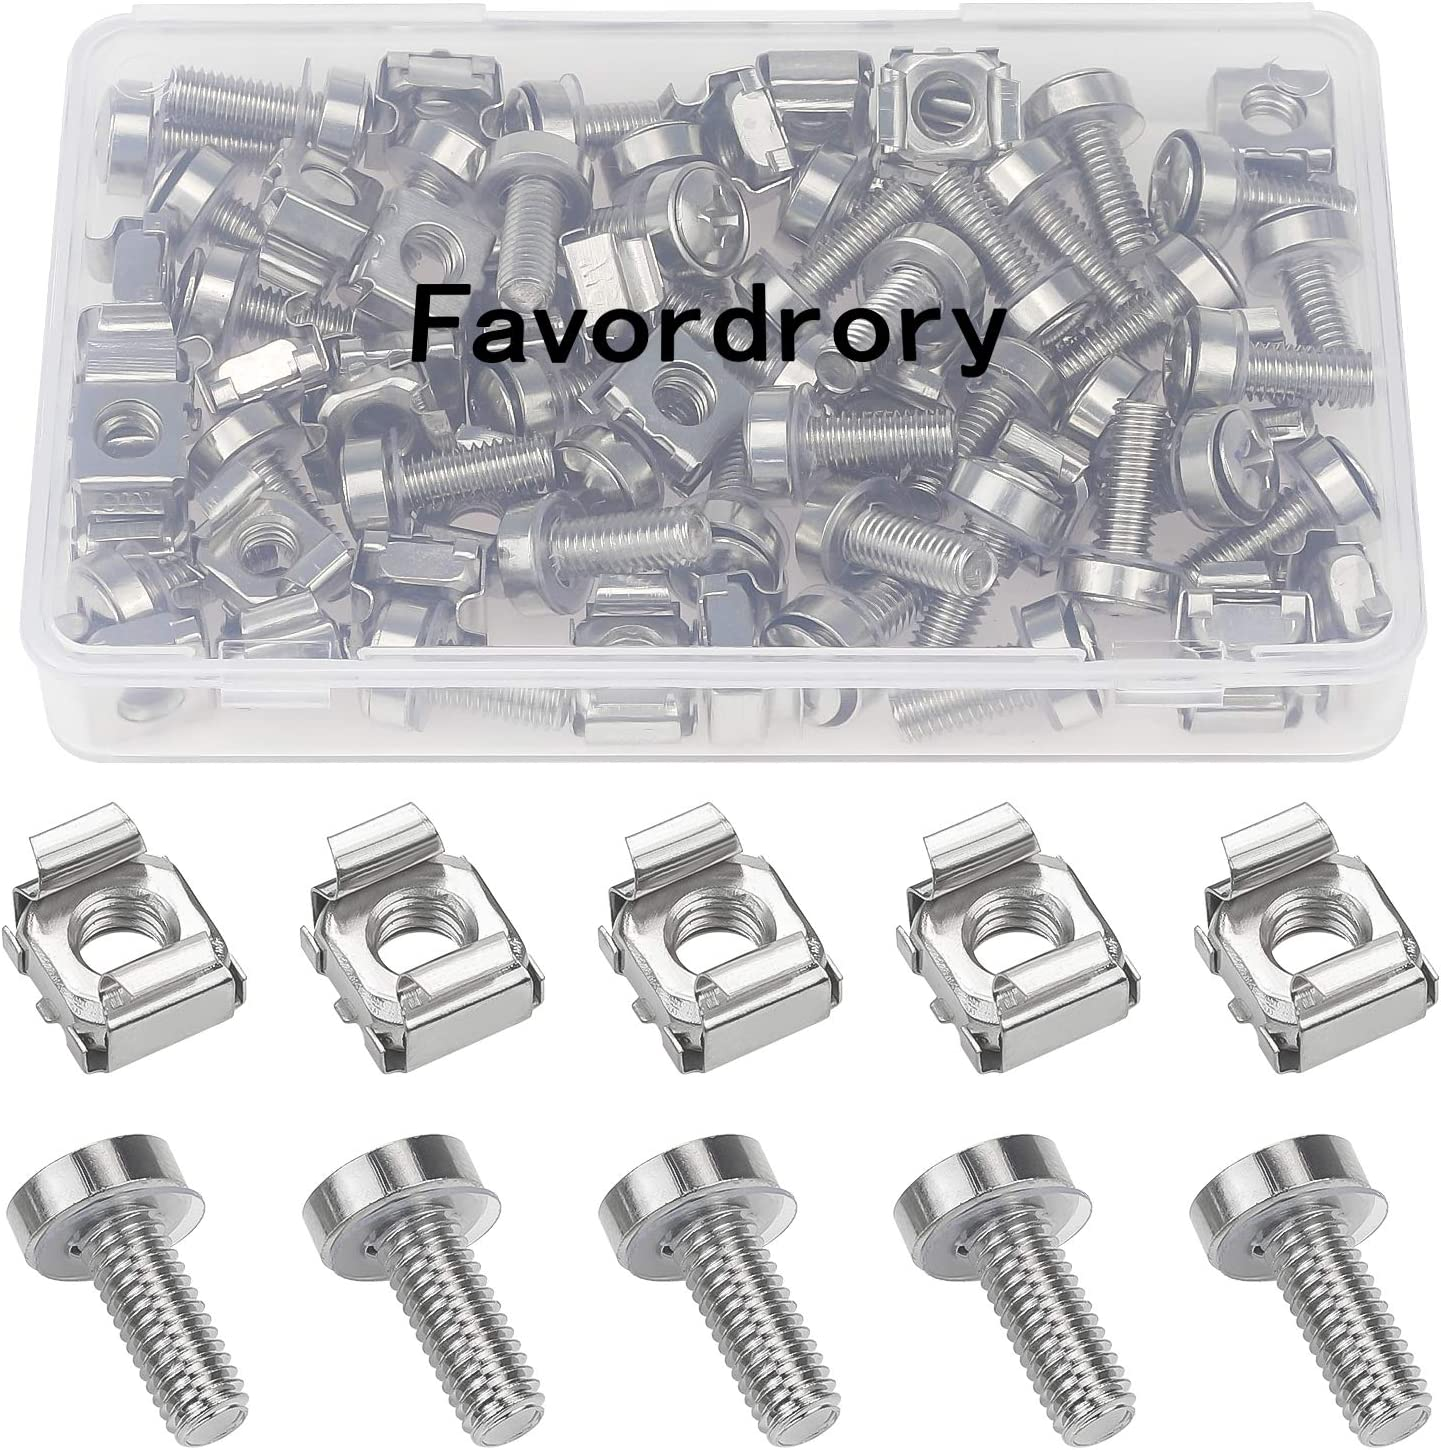 Directly managed store Favordrory Sale SALE% OFF 30 Pack M6 x 20mm Rack Nuts Wa Screws and Cage Mount